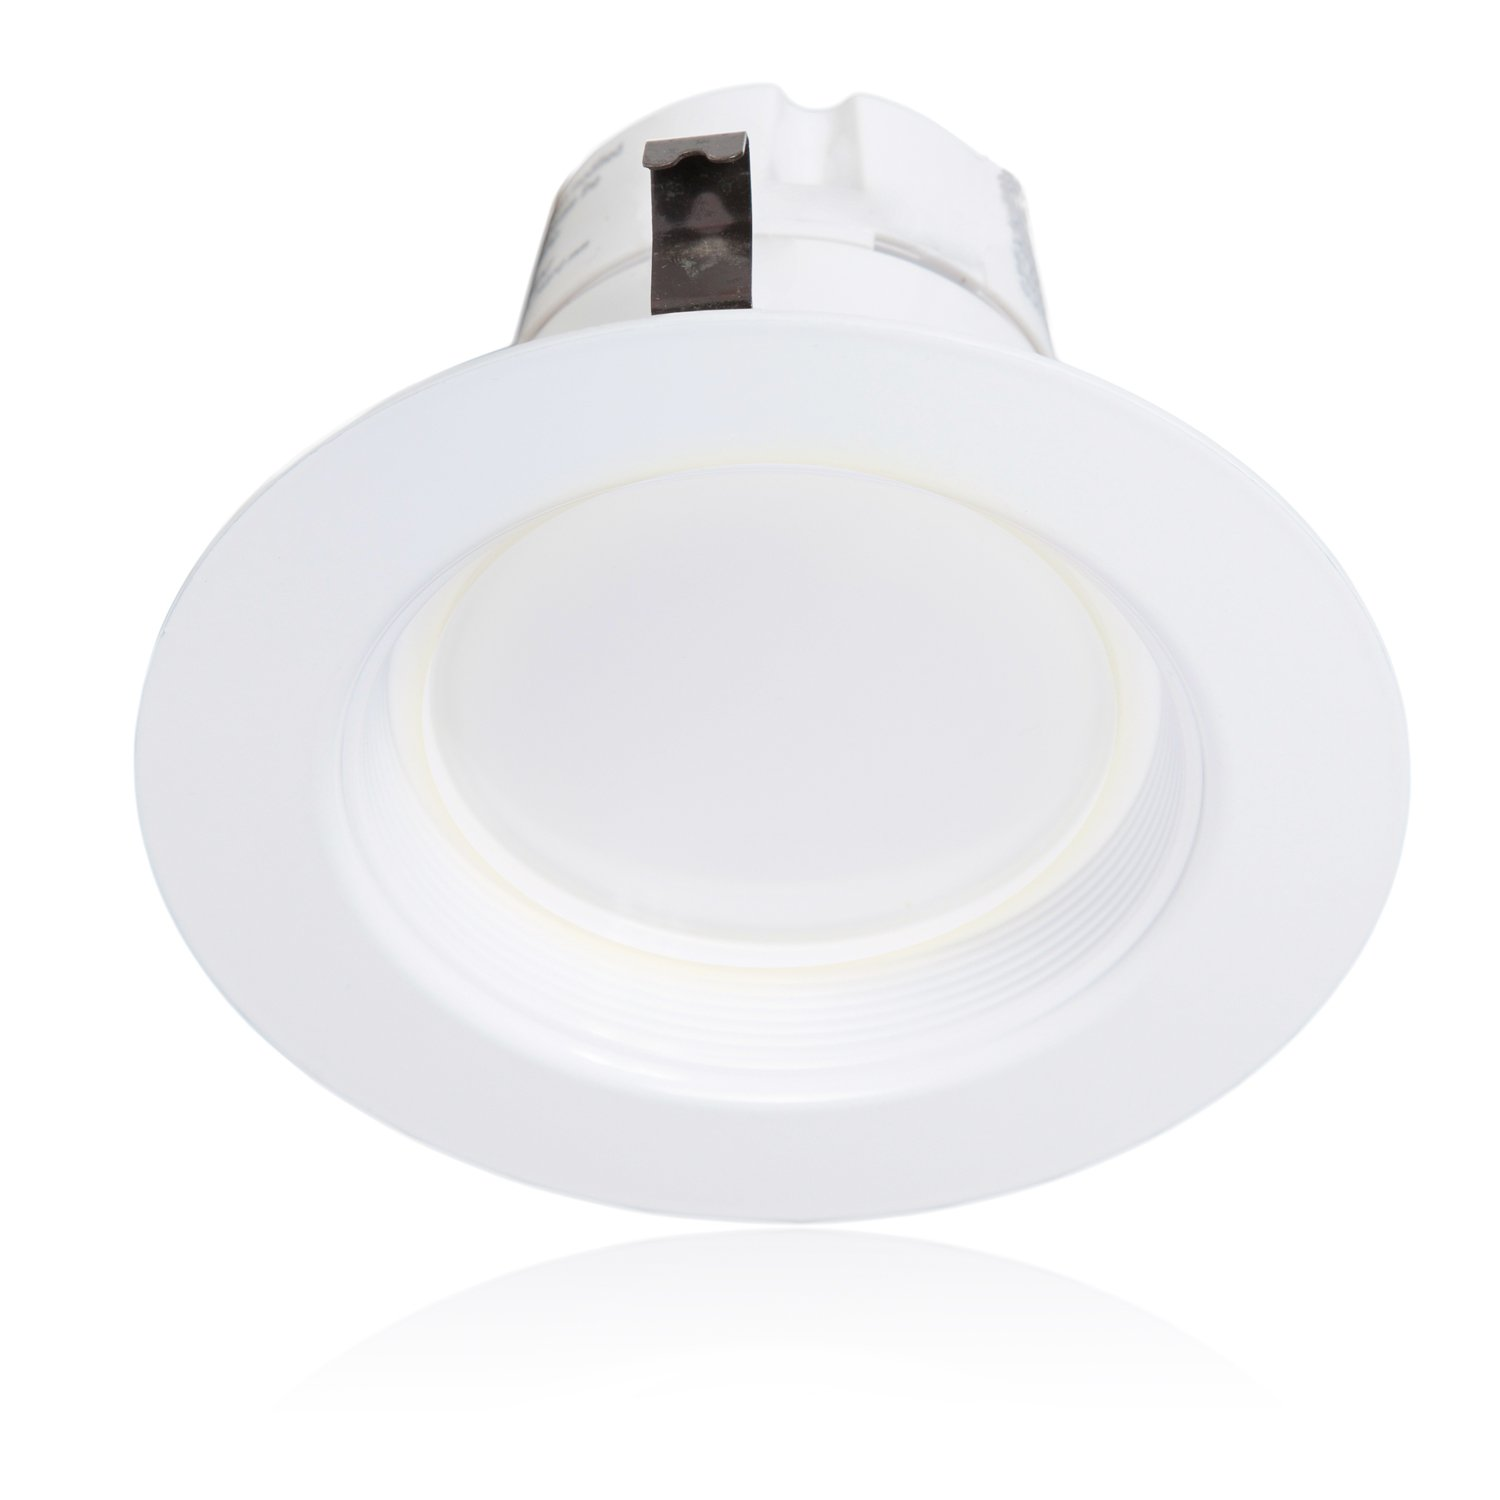 Pack of 4 MRL-41300NW-4 75 Watt Equivalent Straight E26 connection Cable 850 Lumens Energy Star 4-Inch 850 Lumens Maxxima Dimmable LED Retrofit Downlight 4000K Neutral White